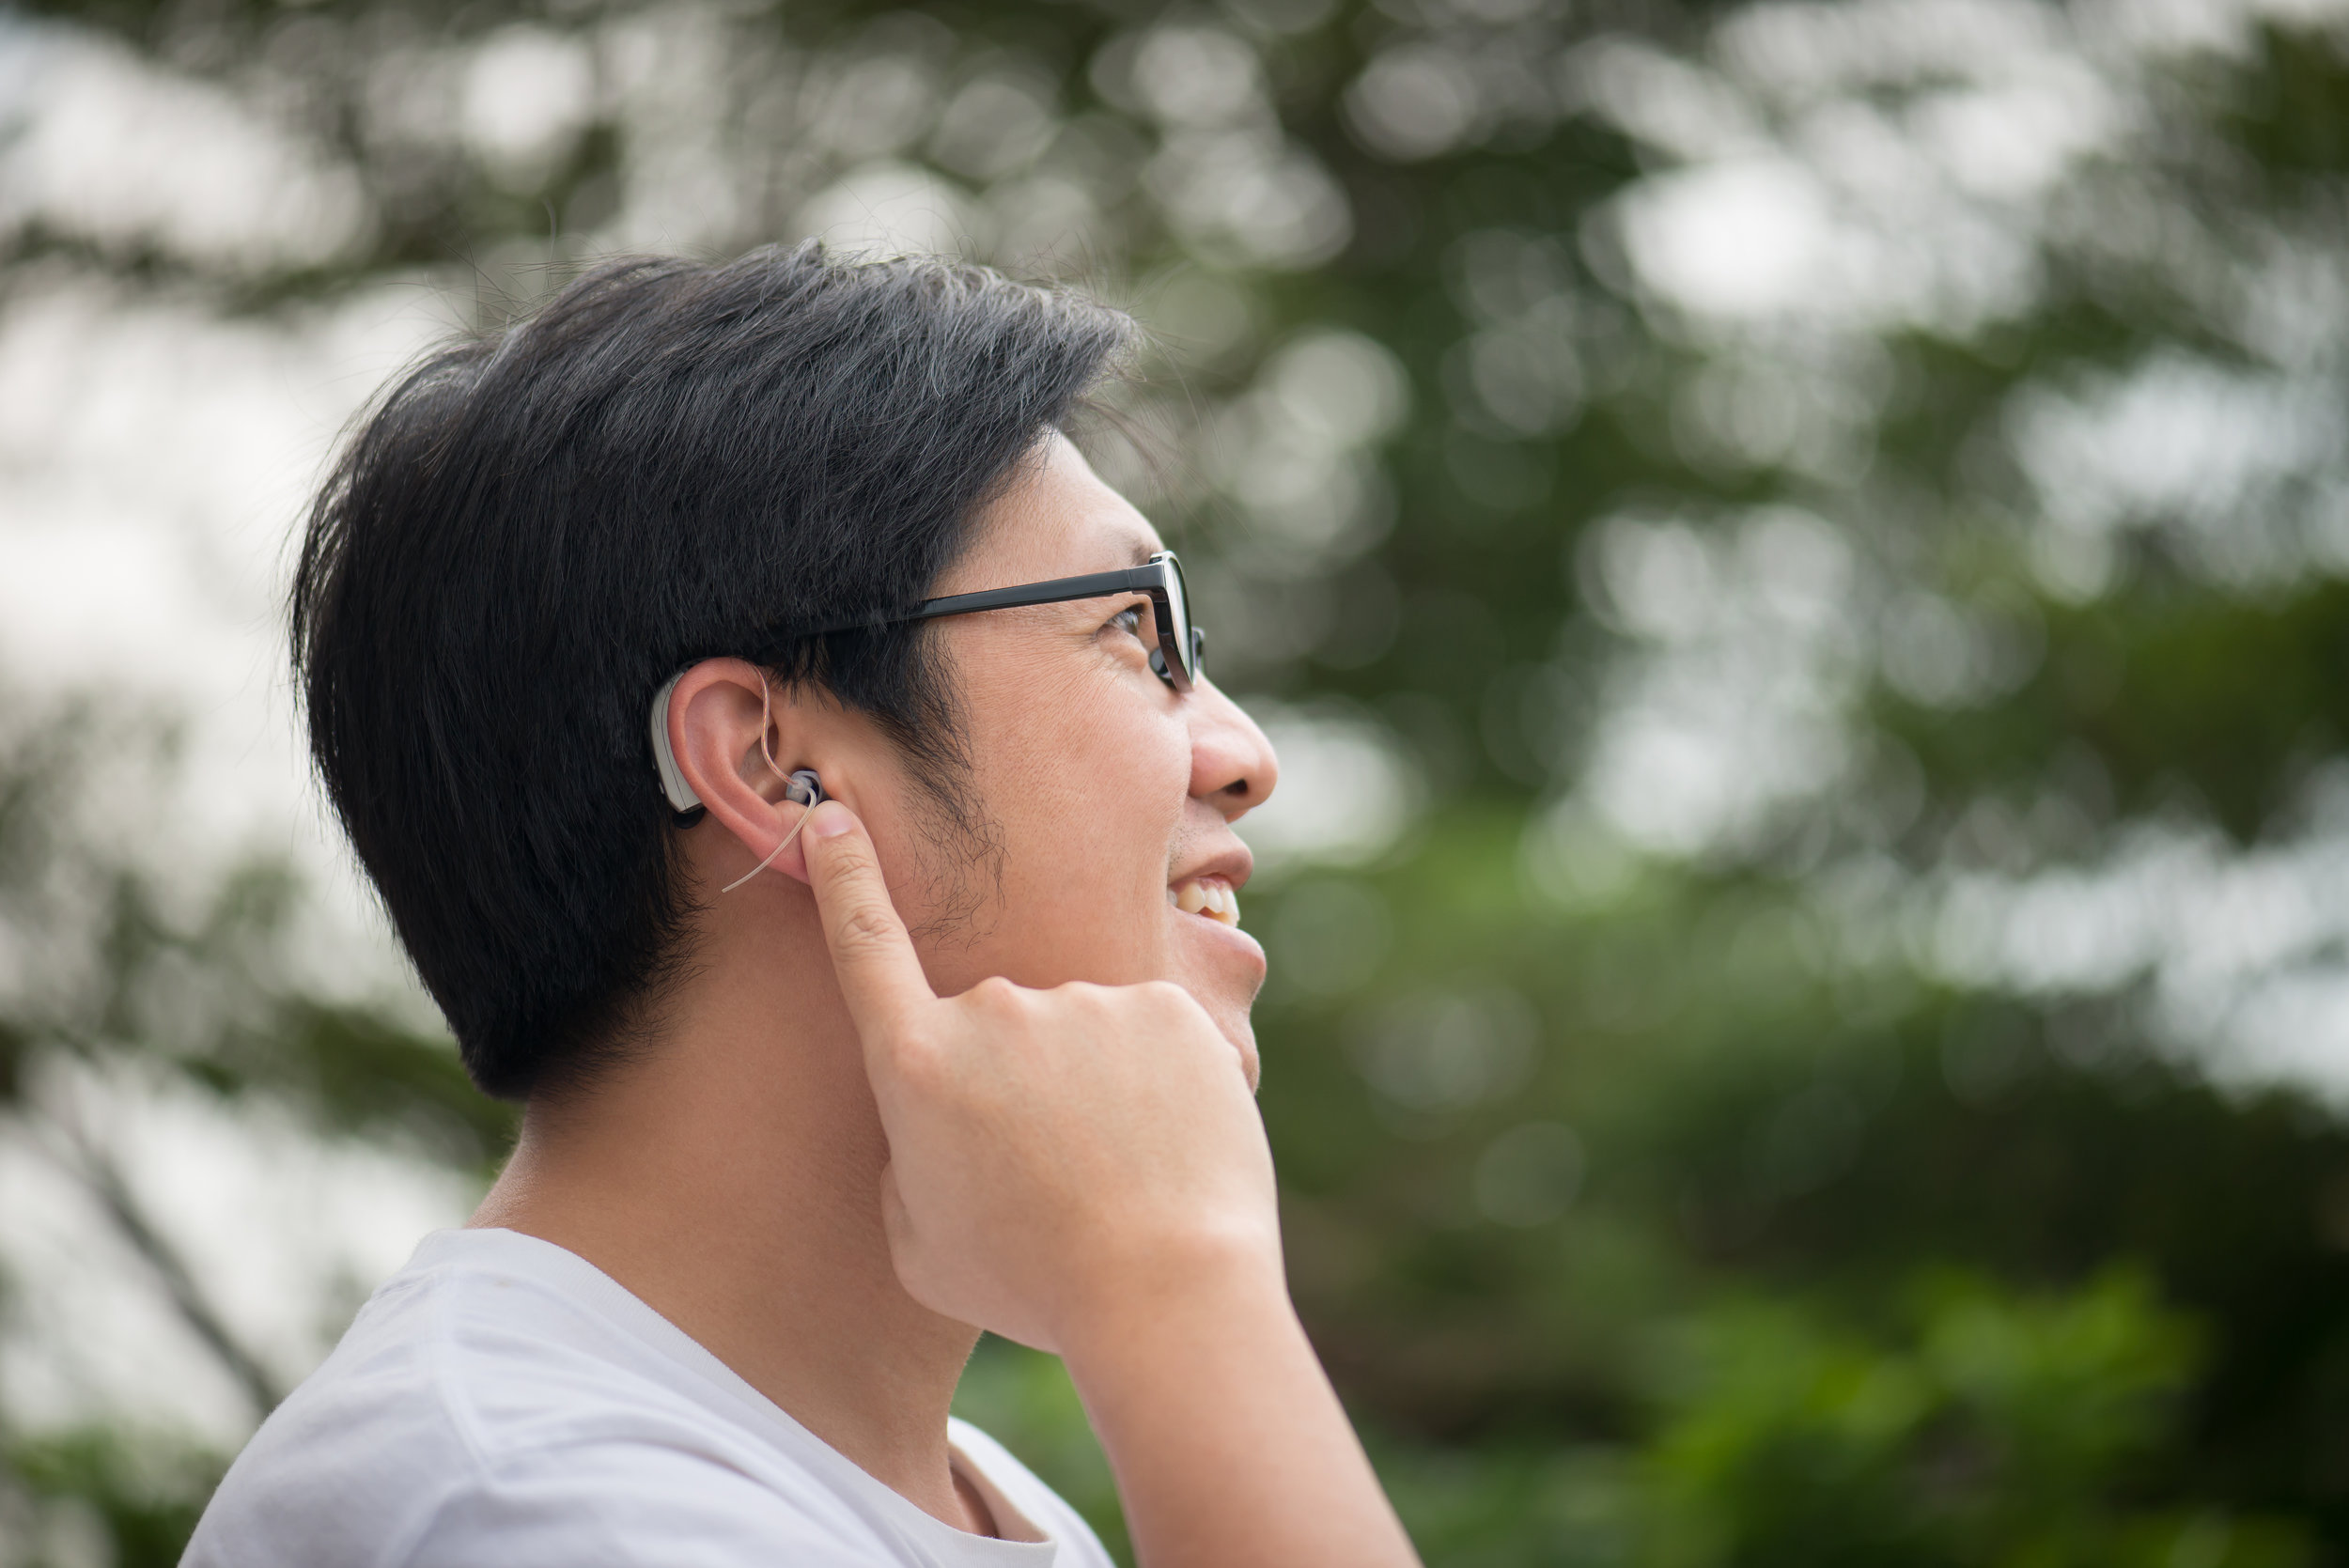 - If your hearing isn't as strong as it used to be, contact Sound Hearing Care at 864-881-1663 for a hearing evaluation.